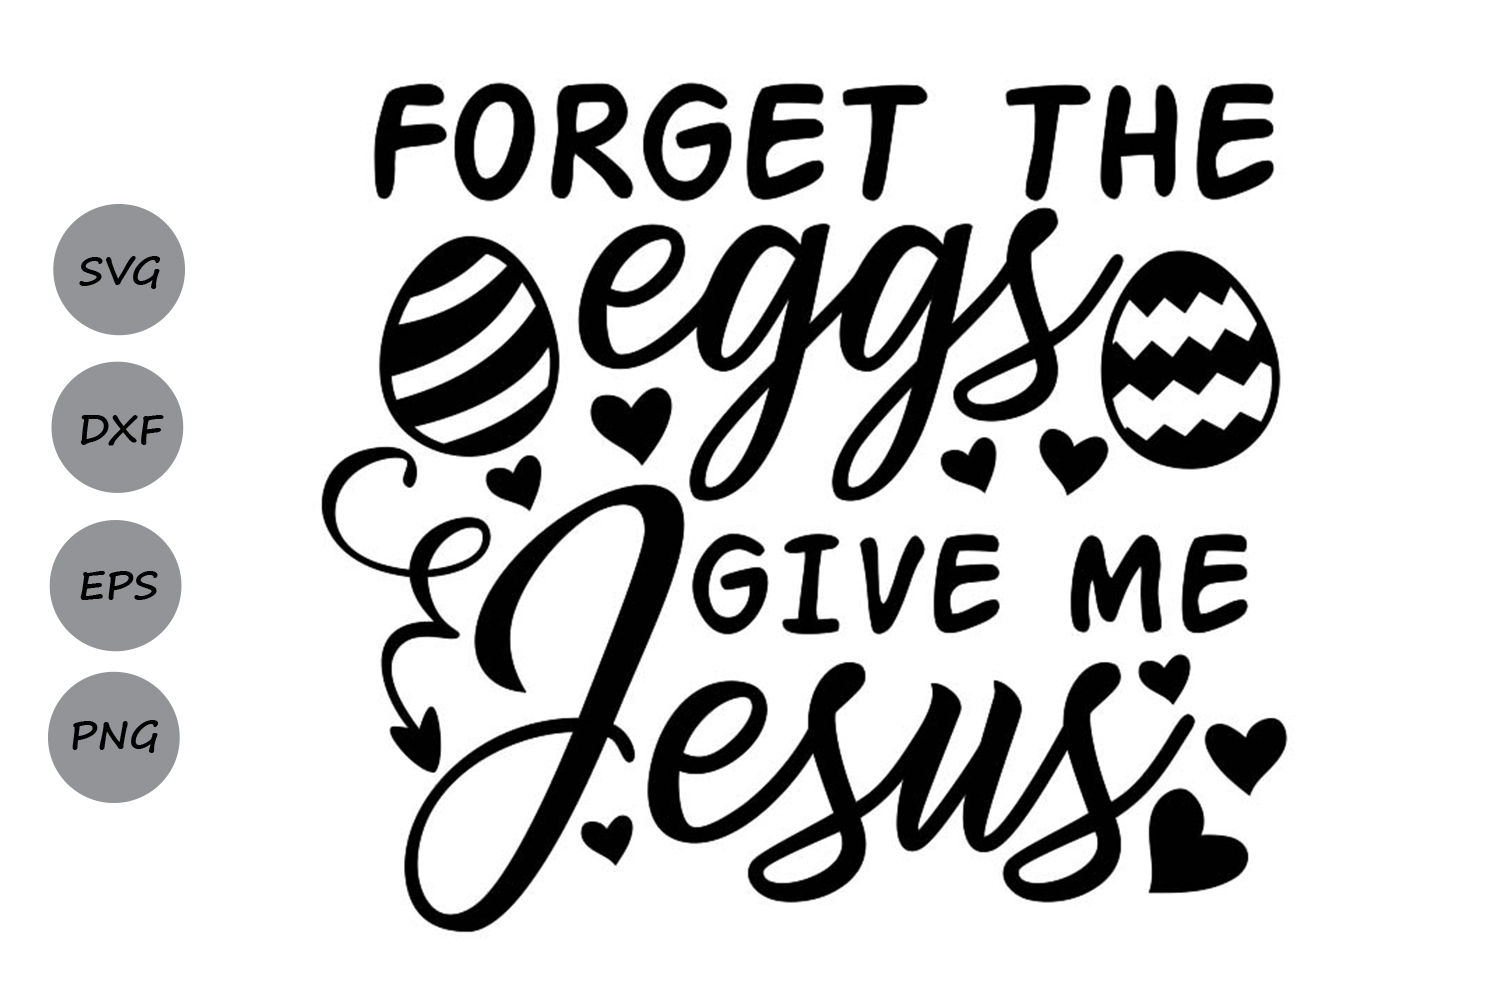 Download Free Forget The Eggs Give Me Jesus Graphic By Cosmosfineart for Cricut Explore, Silhouette and other cutting machines.